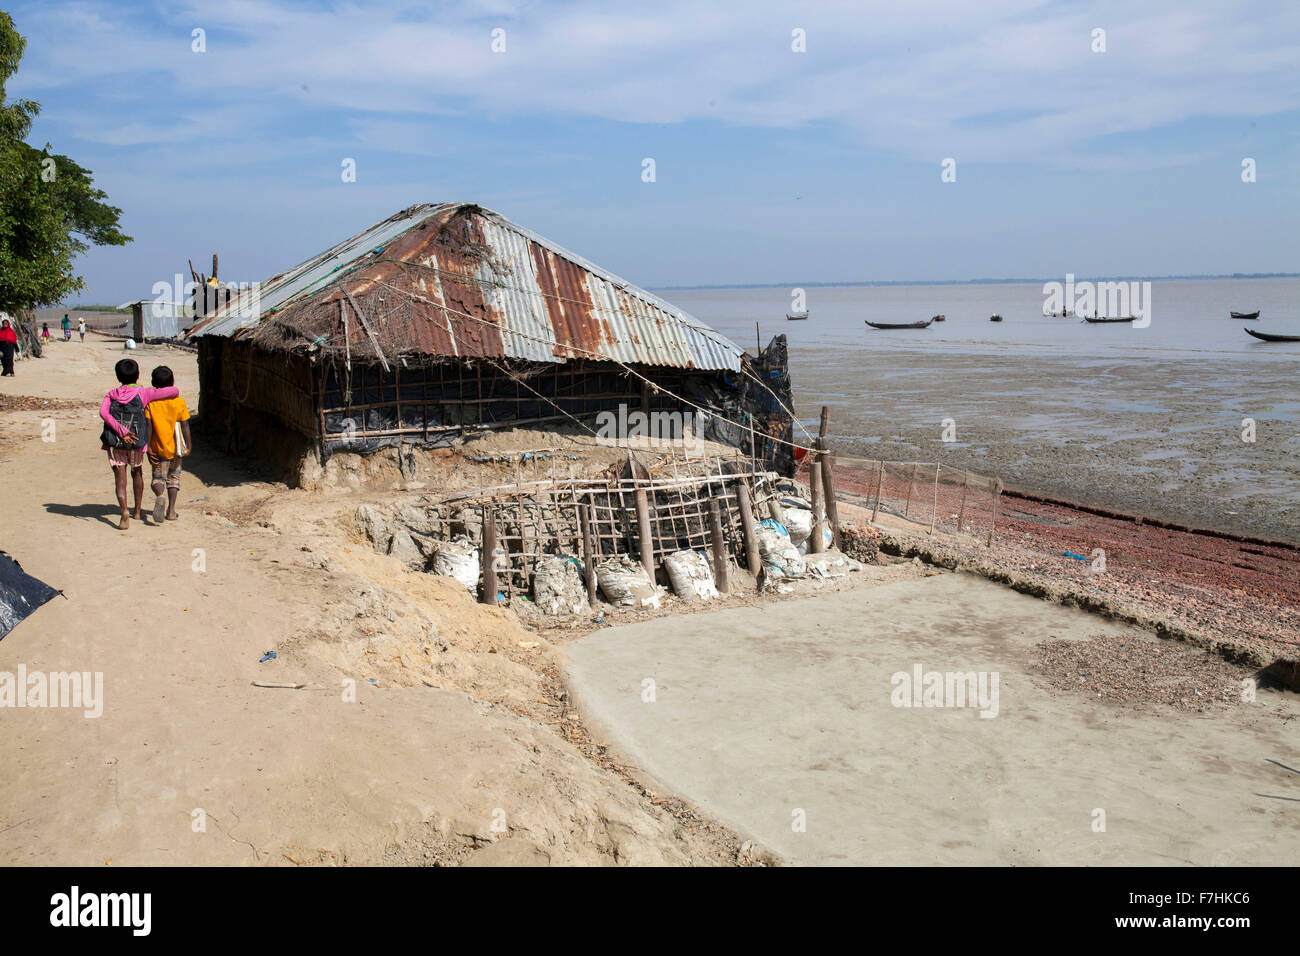 COX's BAZAR, BANGLADESH - November 29: View of Climate Change and Sea Level Raise area in Kutubdia Island on - Stock Image